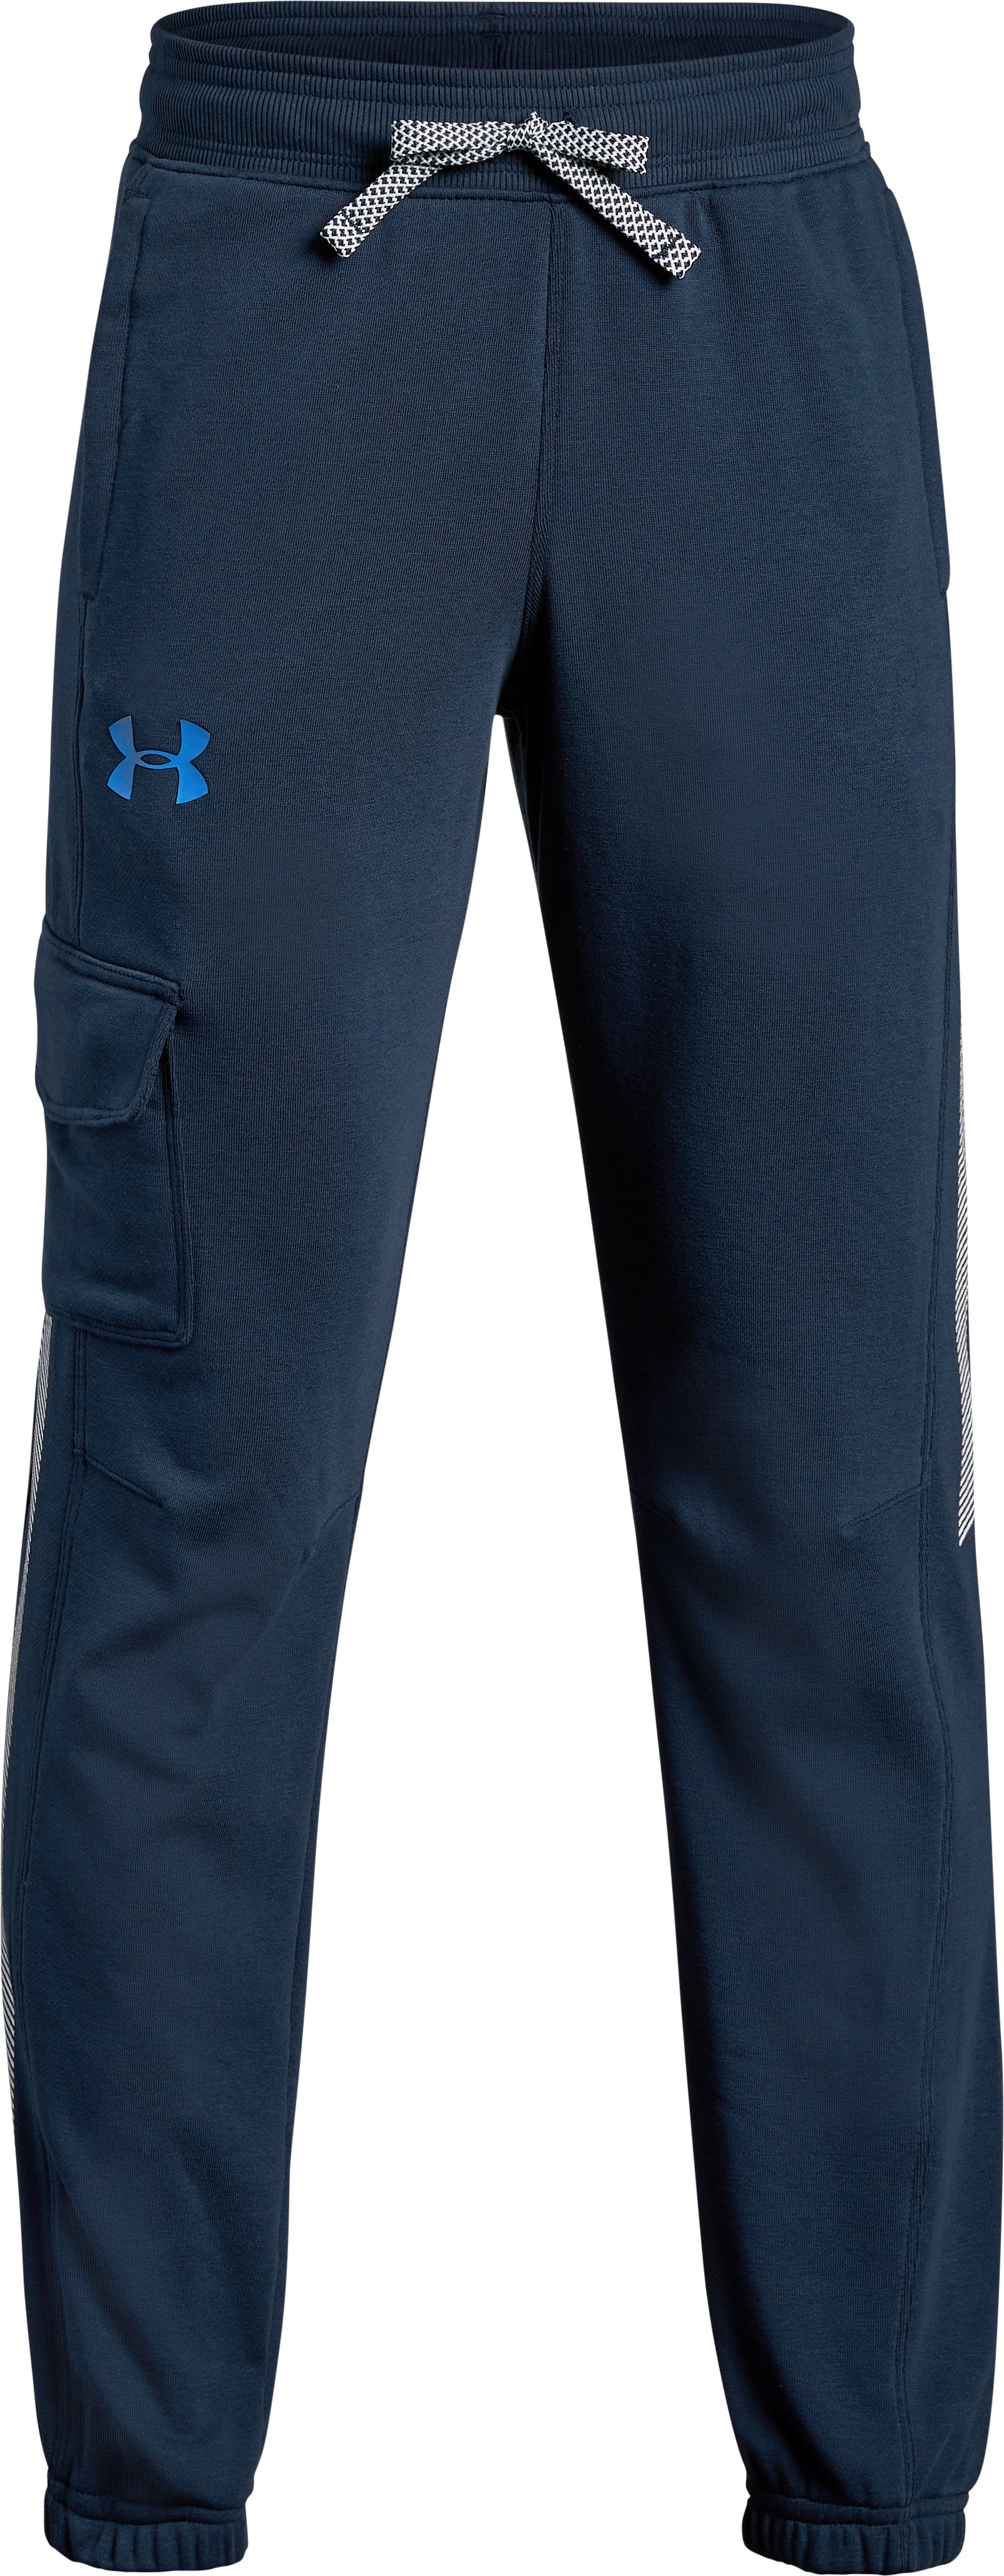 stretch joggers Boys' UA Microthread Terry  Joggers Ultra-soft, warm terry fleece that's also <strong>stretchy</strong> & breathable .